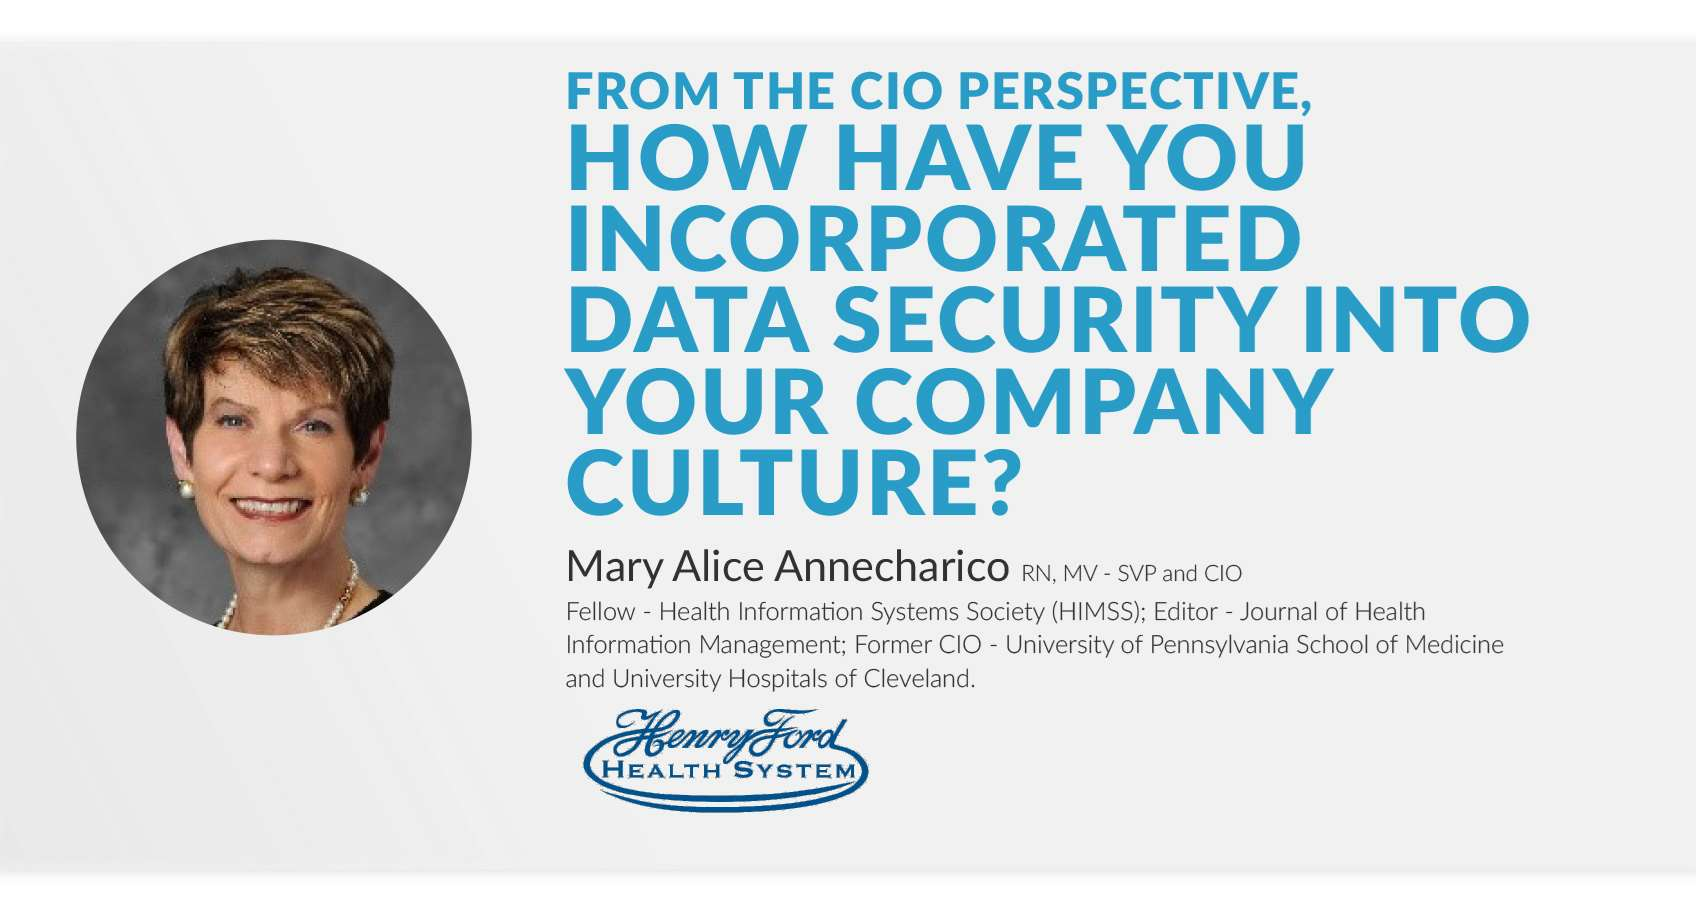 how have you incorporated data security into your company culture